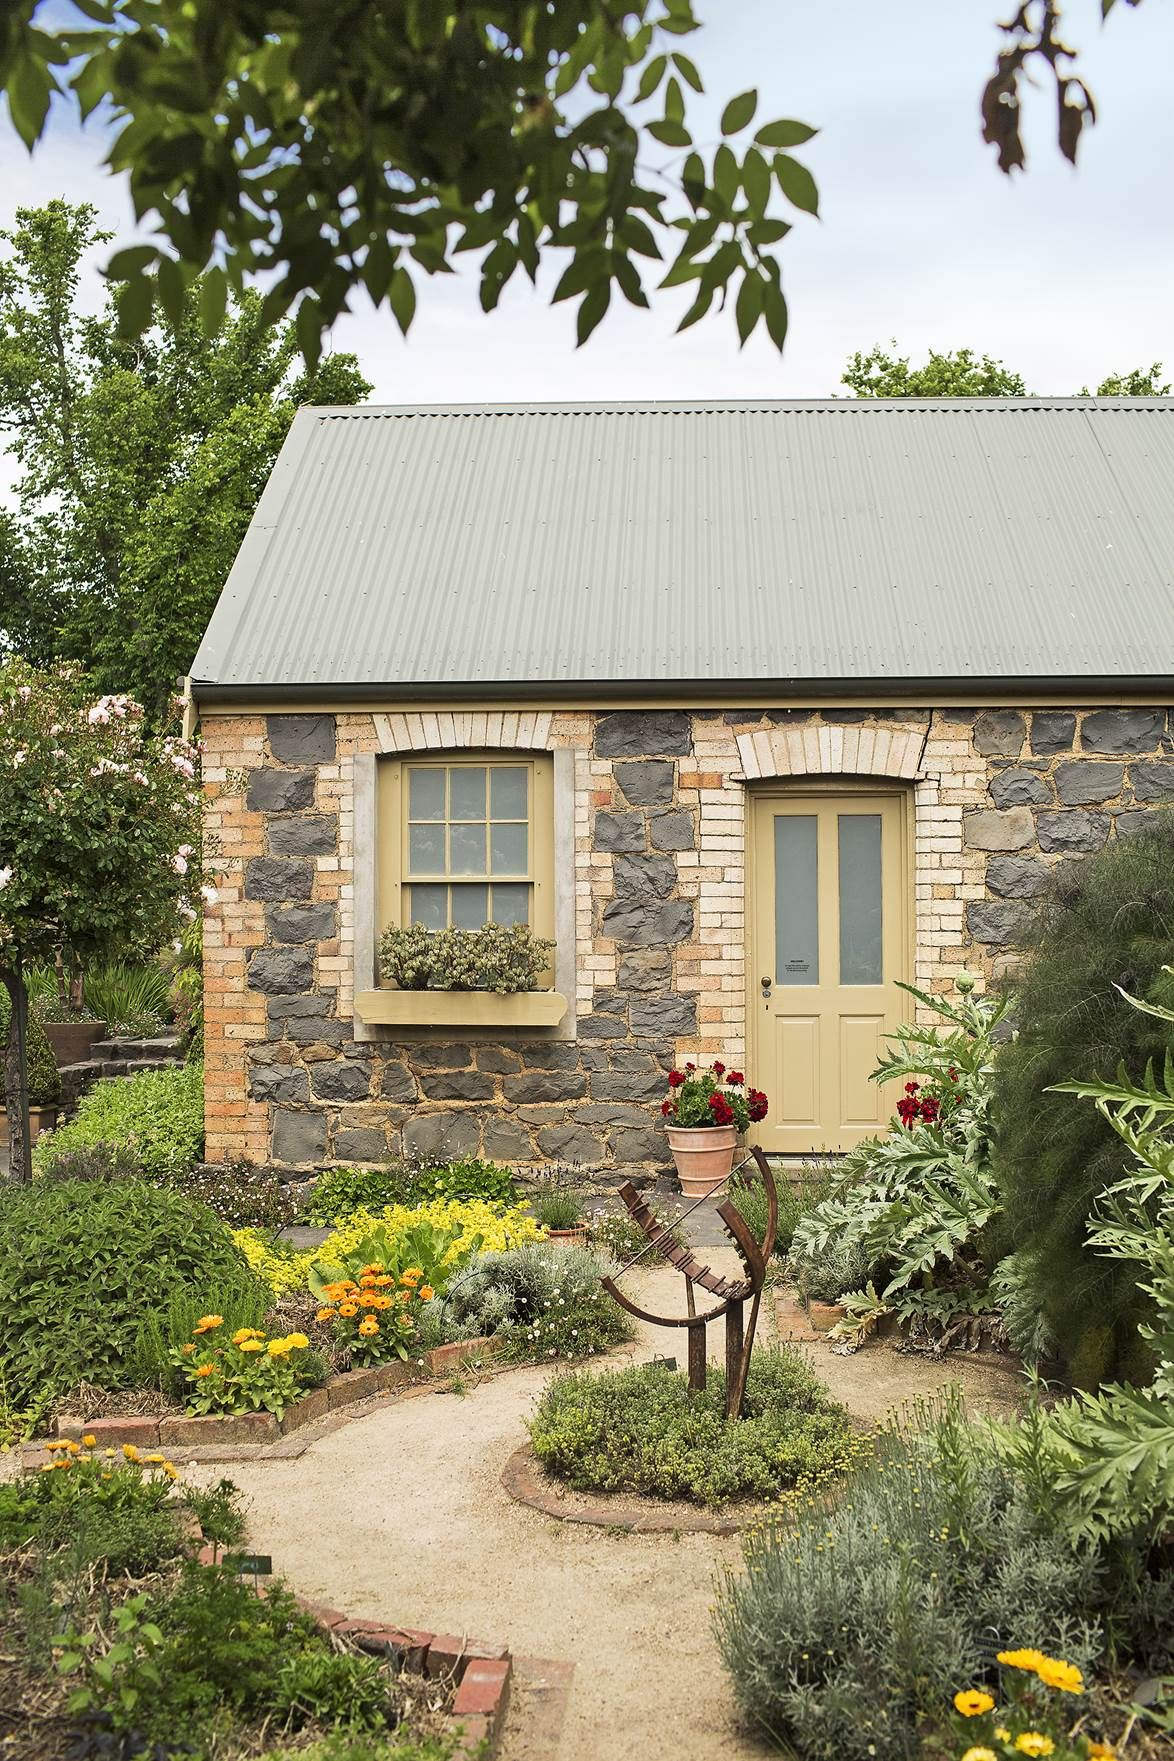 Narmbool An Inspiring Heritage Property Open To All